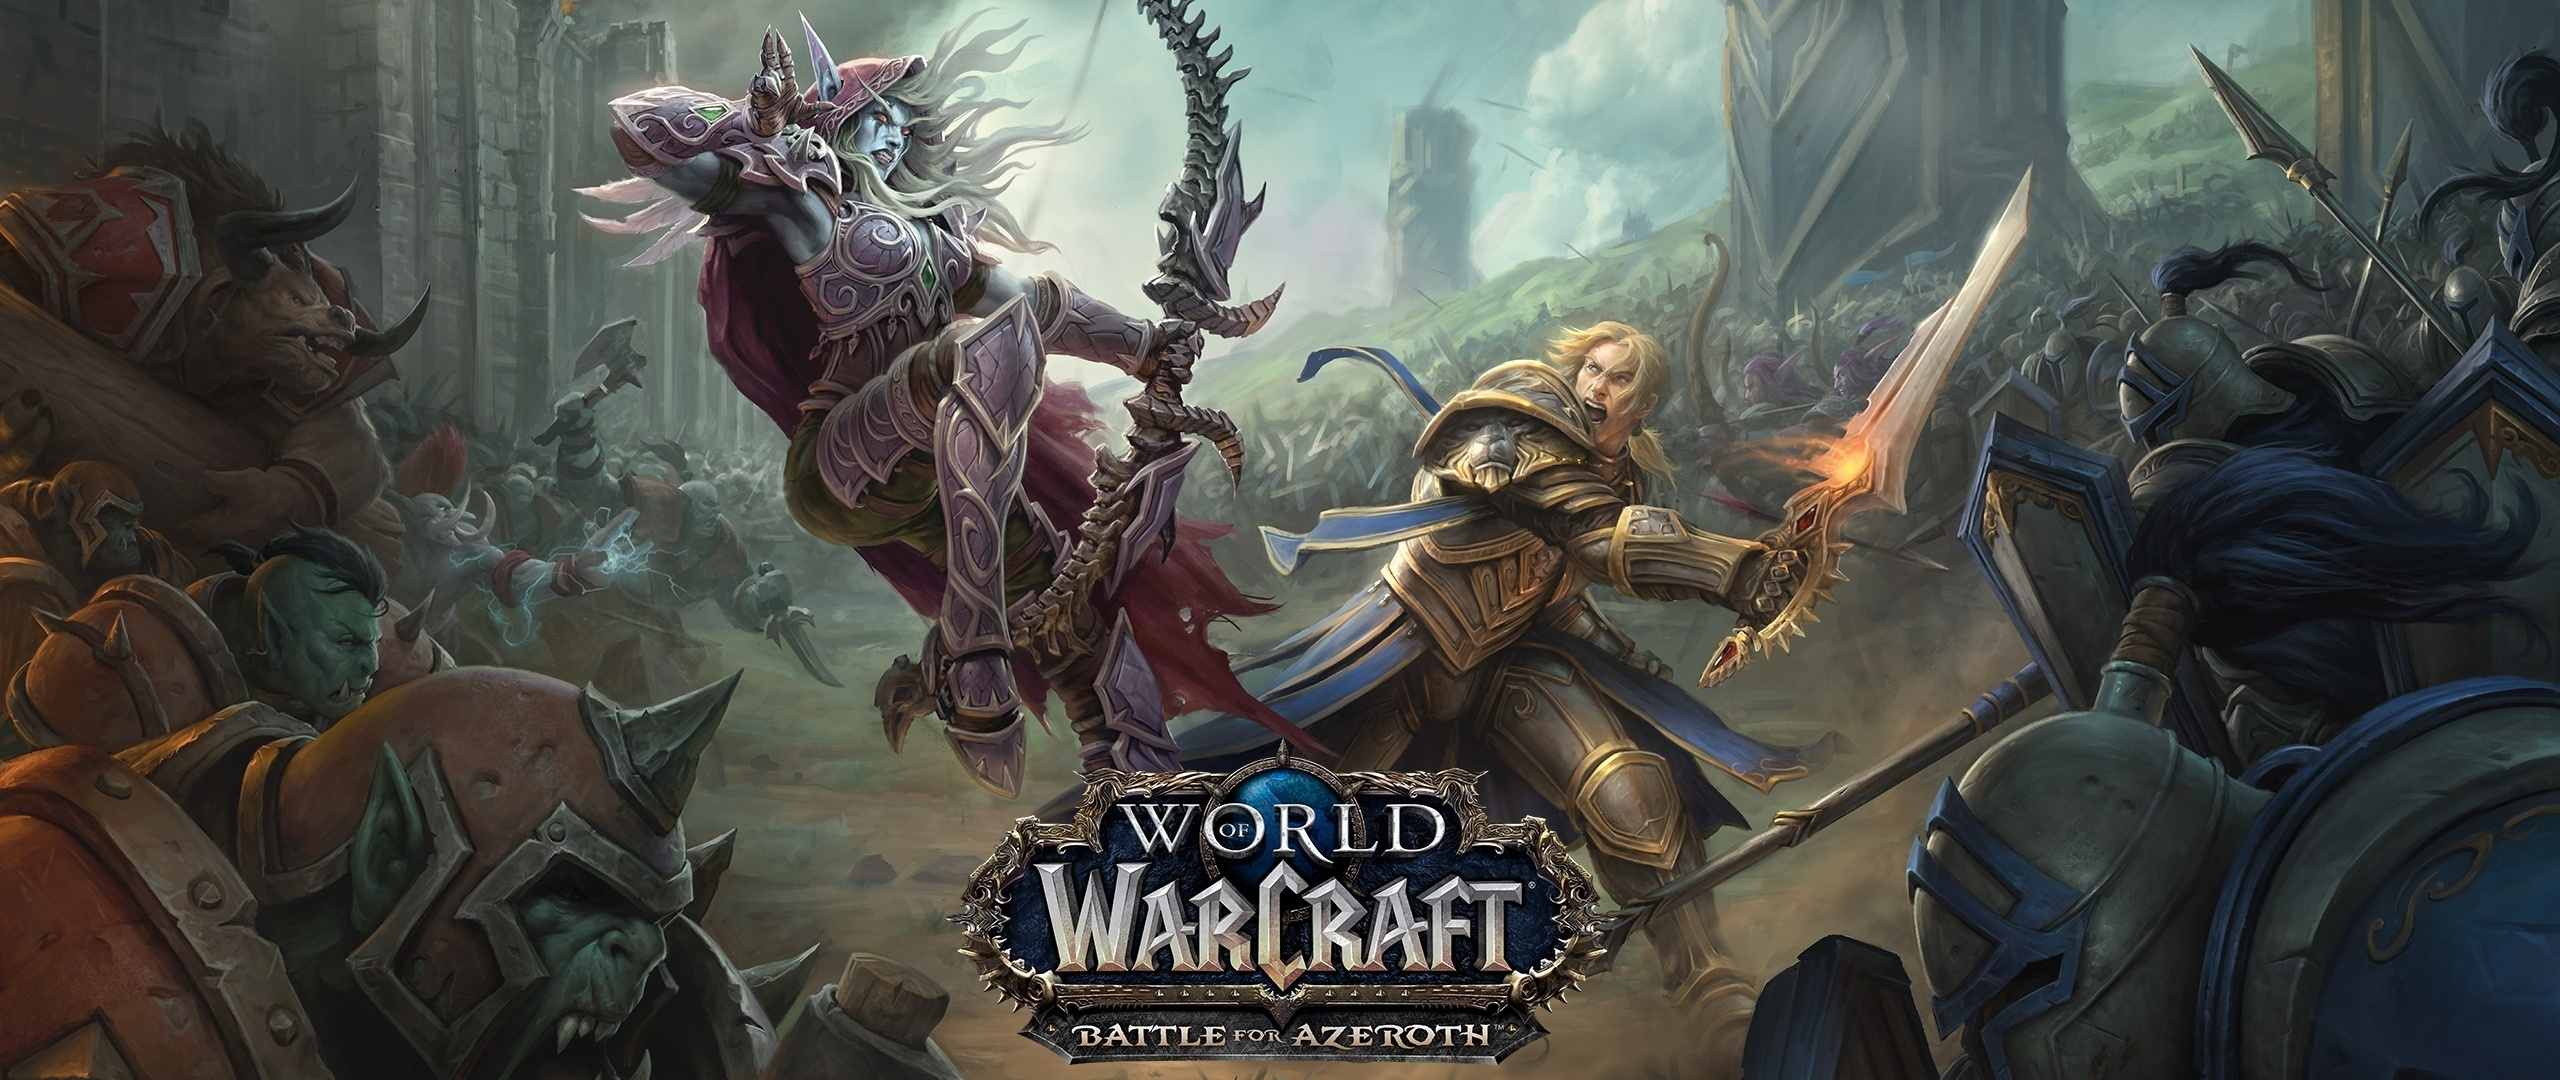 Battle for Azeroth 26707 Class Changes and Azerite Traits - Wowhead News